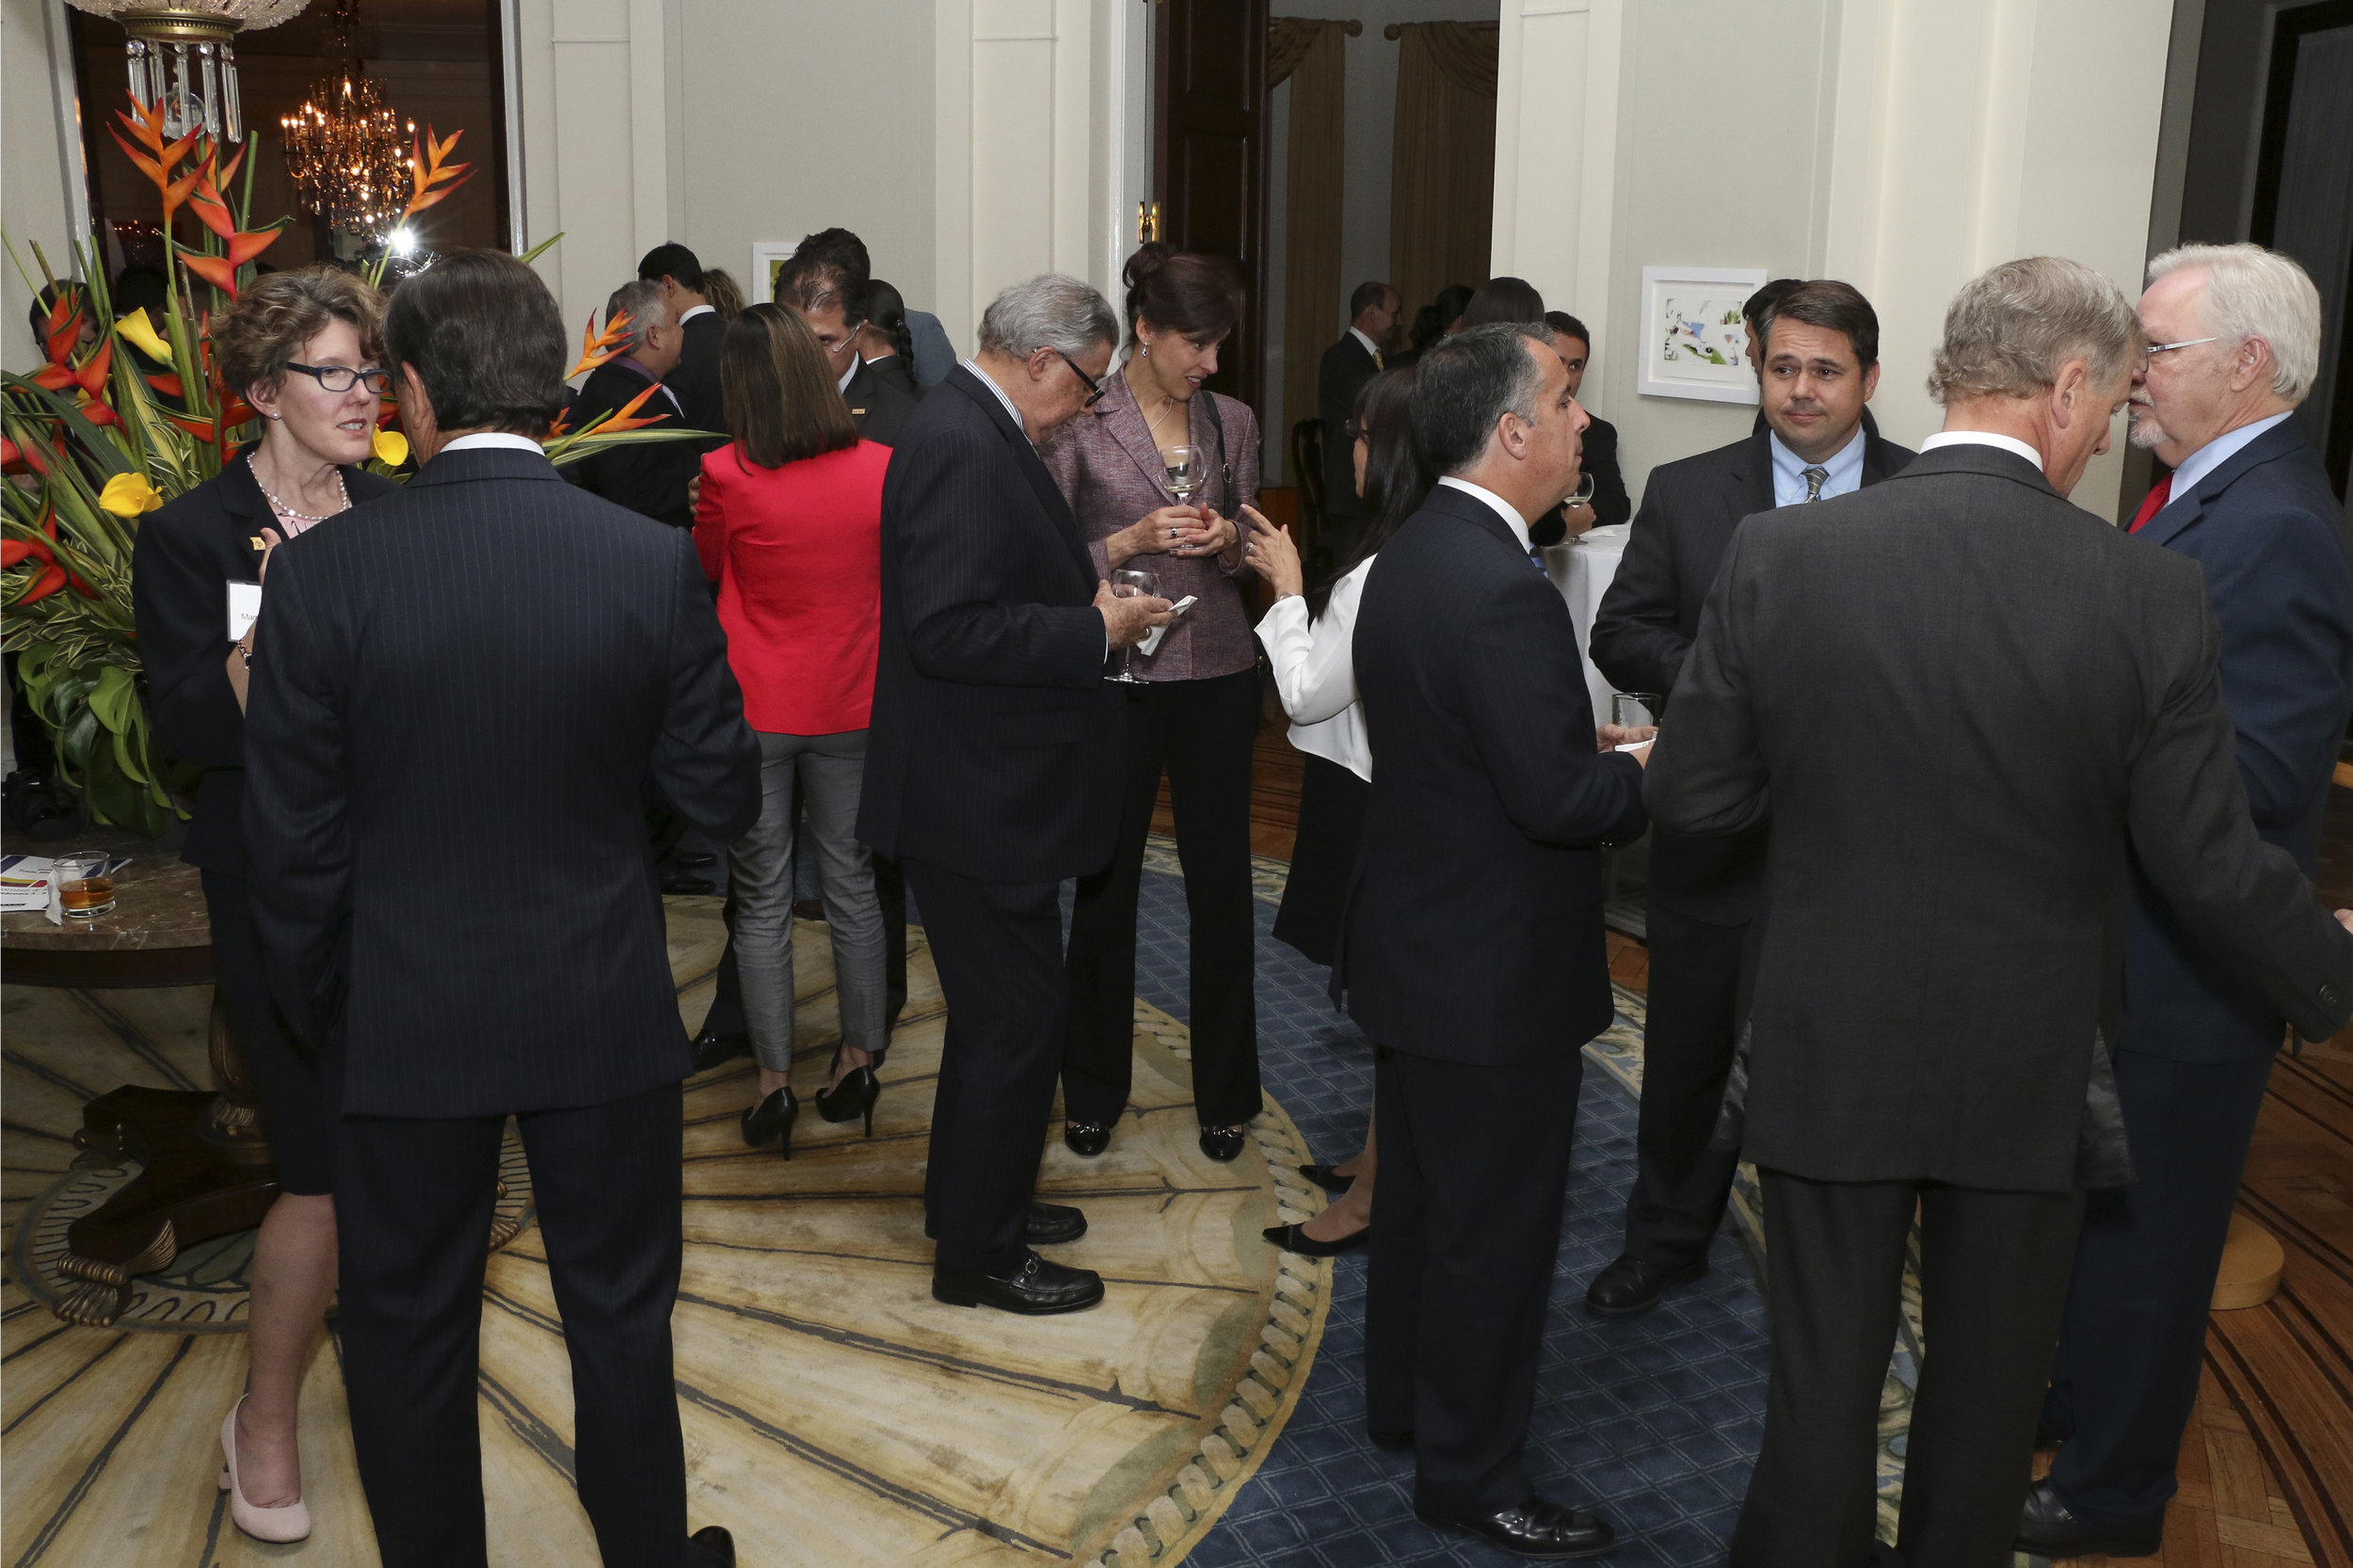 Reception at US Ambassador's residence, Bogota, Colombia